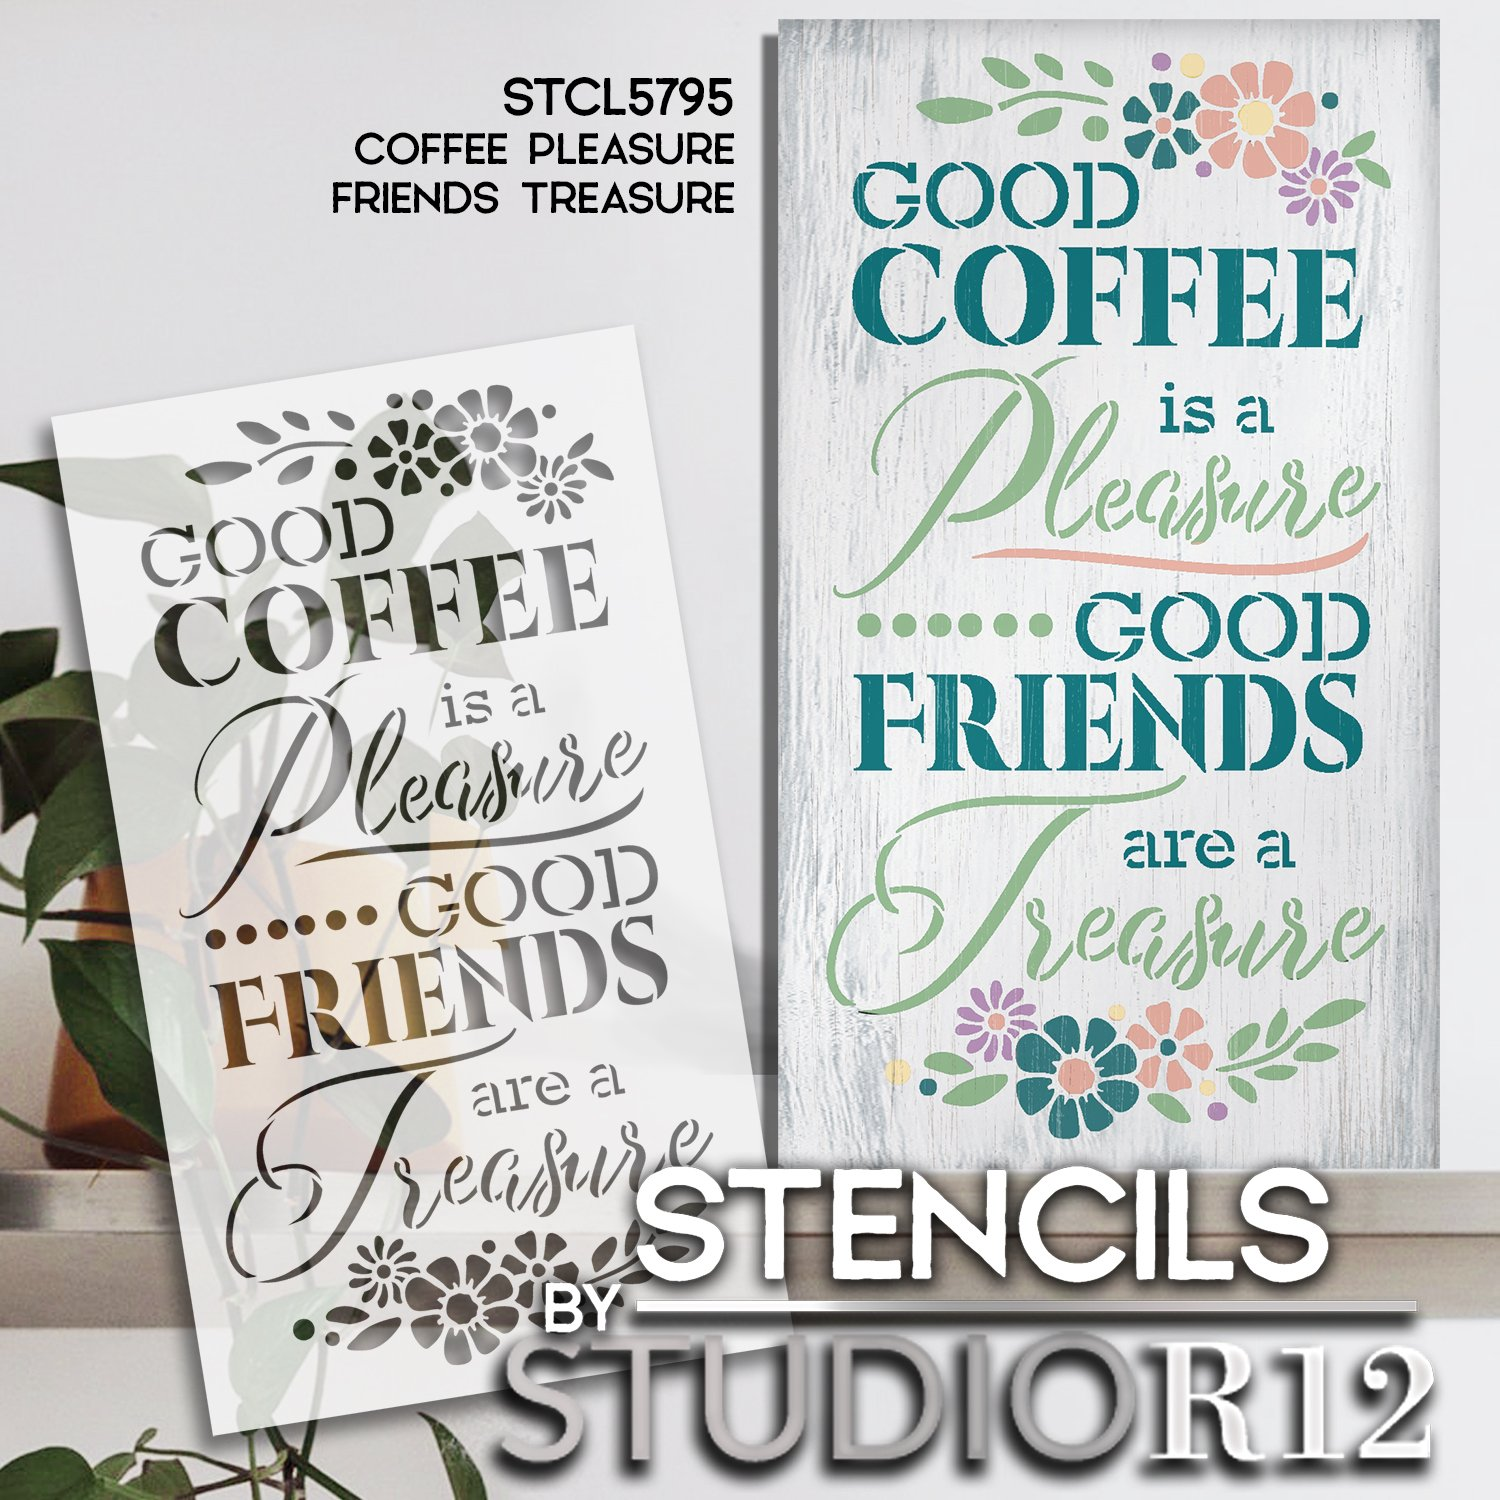 Coffee Pleasure Friends Treasure Stencil by StudioR12   DIY Kitchen Cafe Home Decor   Craft & Paint Wood Sign   Reusable Mylar Template   Select Size